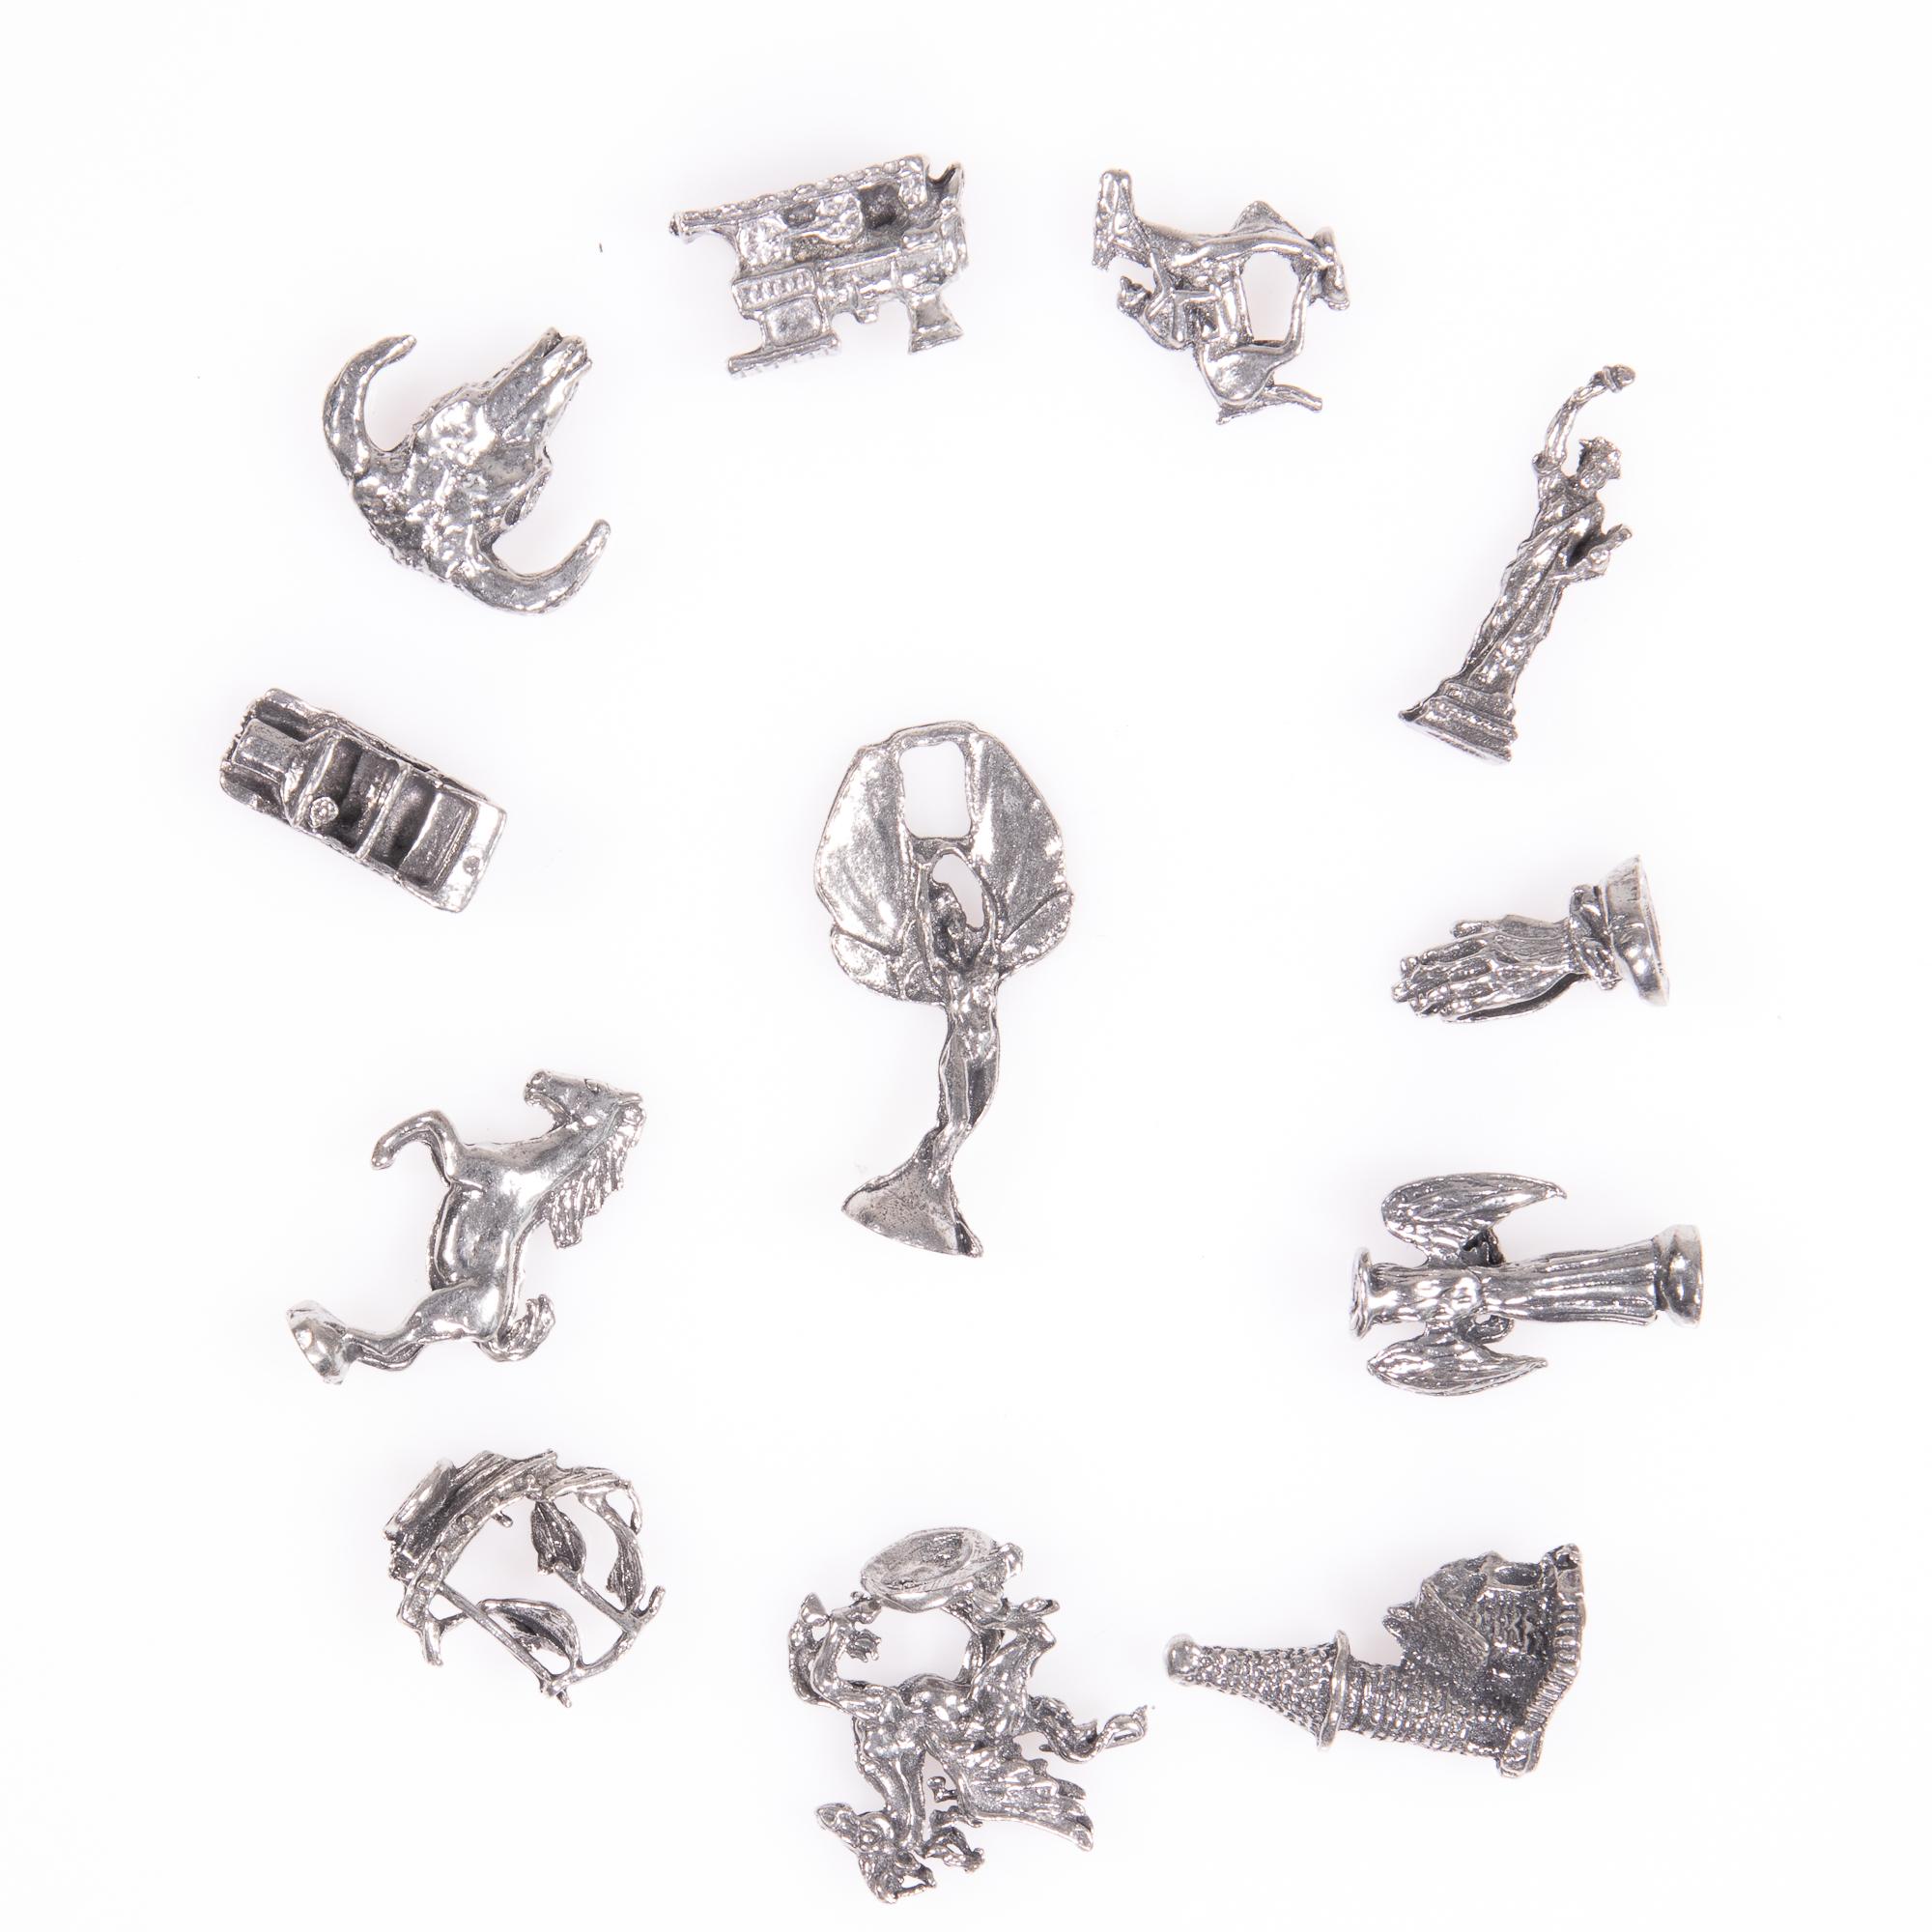 Selection of 12x Silver Novelty Charms